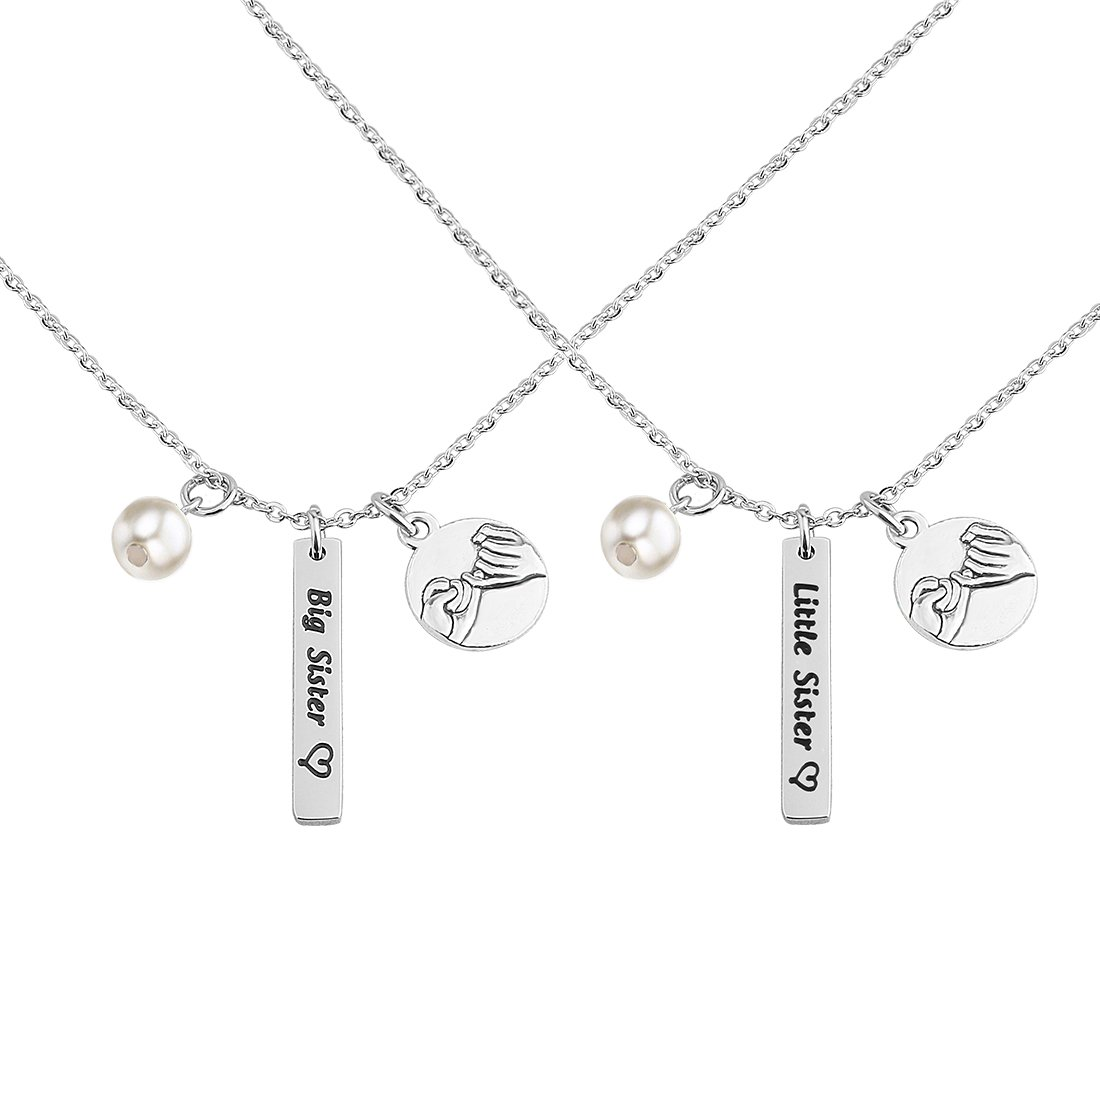 Zuo Bao Sister Necklace Big Sister Little Sister Necklace Set Family Jewelry Gifts for Sisters And Best Friends (Big Sis Little Sis Set)